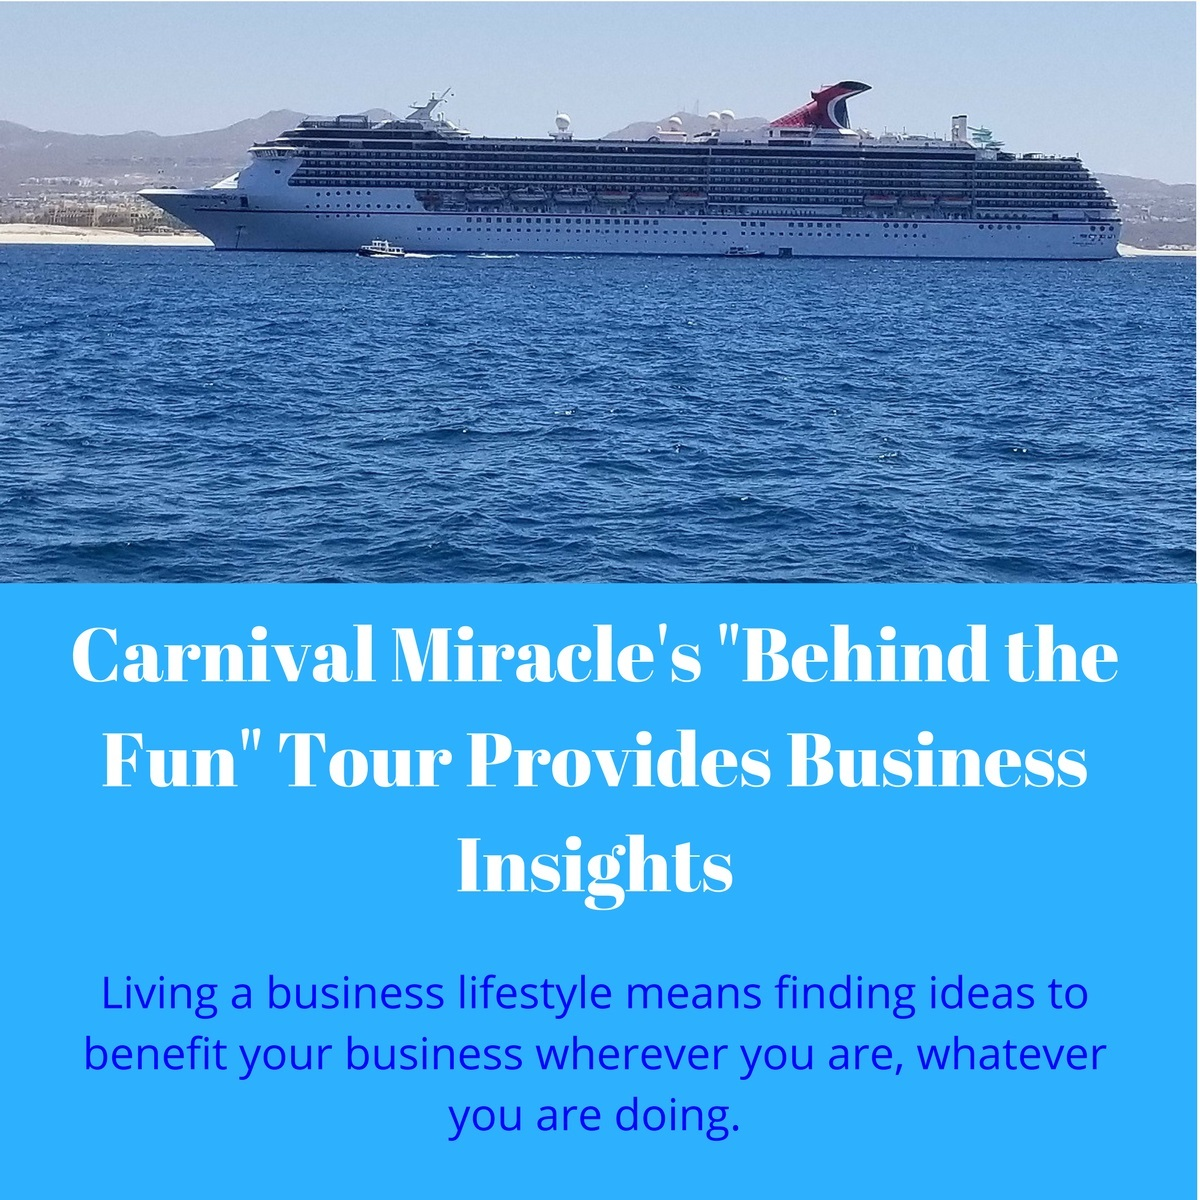 John Aberle's Meme using his picture of the Carnival Miracle off Cabo San Lucas for the image